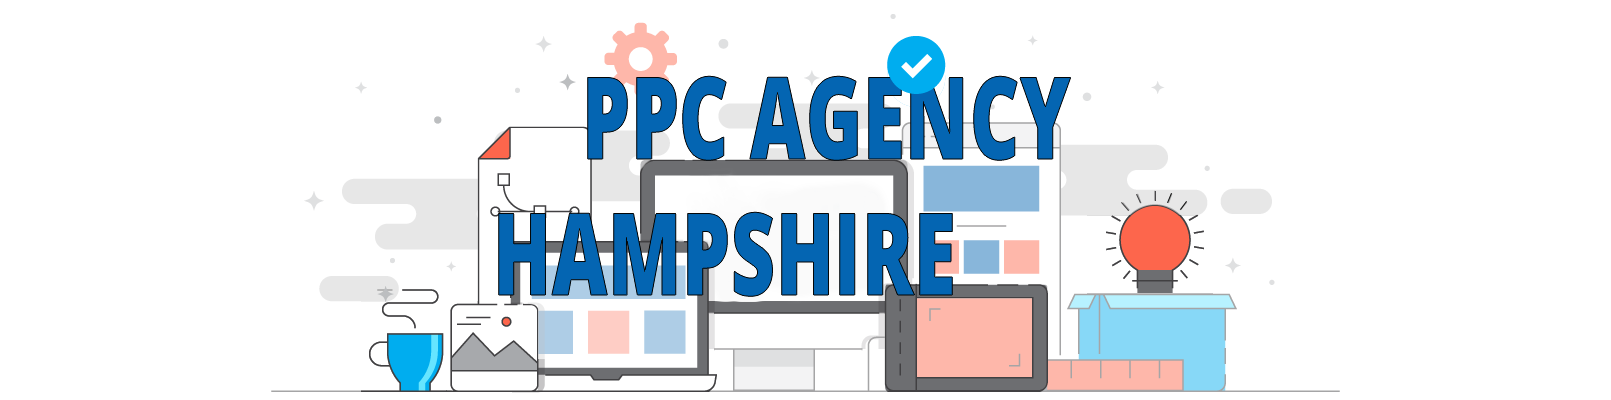 seek social ppc agency hampshire header with transparent background